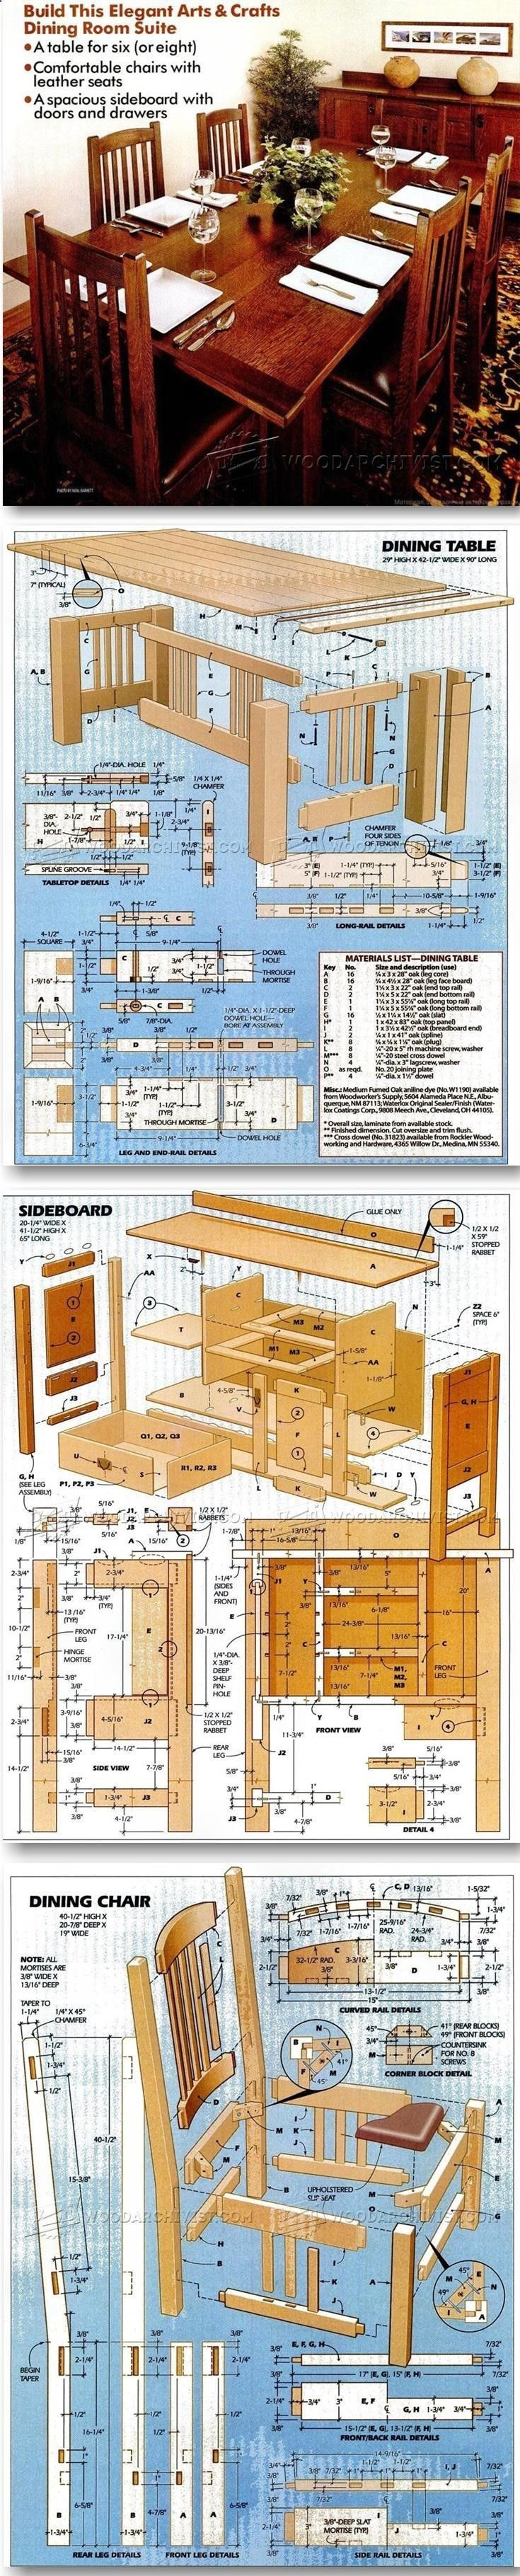 Dining Room Furniture Plans - Furniture Plans and Projects   WoodArchivist.com